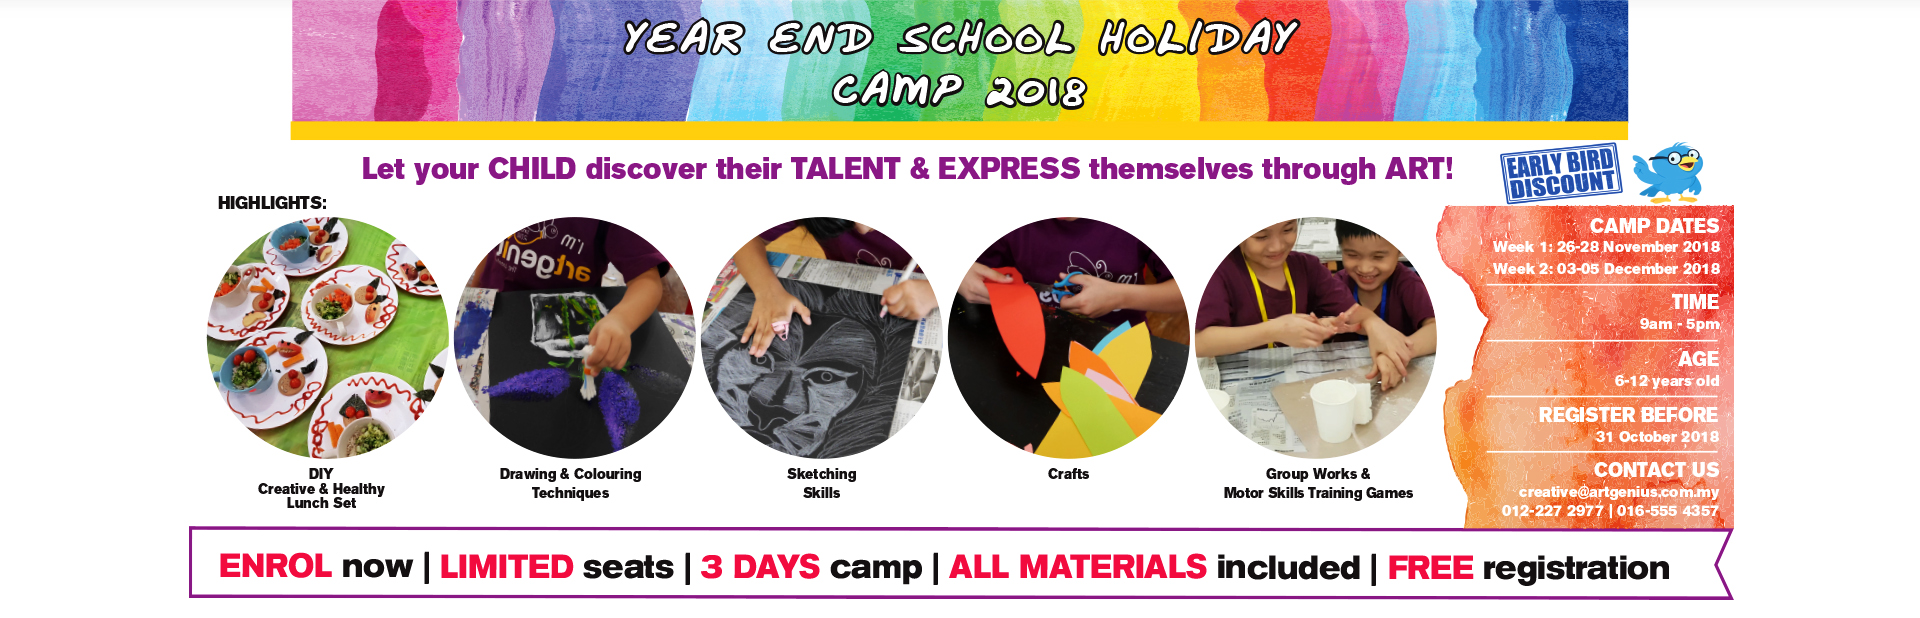 banner-holiday-camp-december-2018